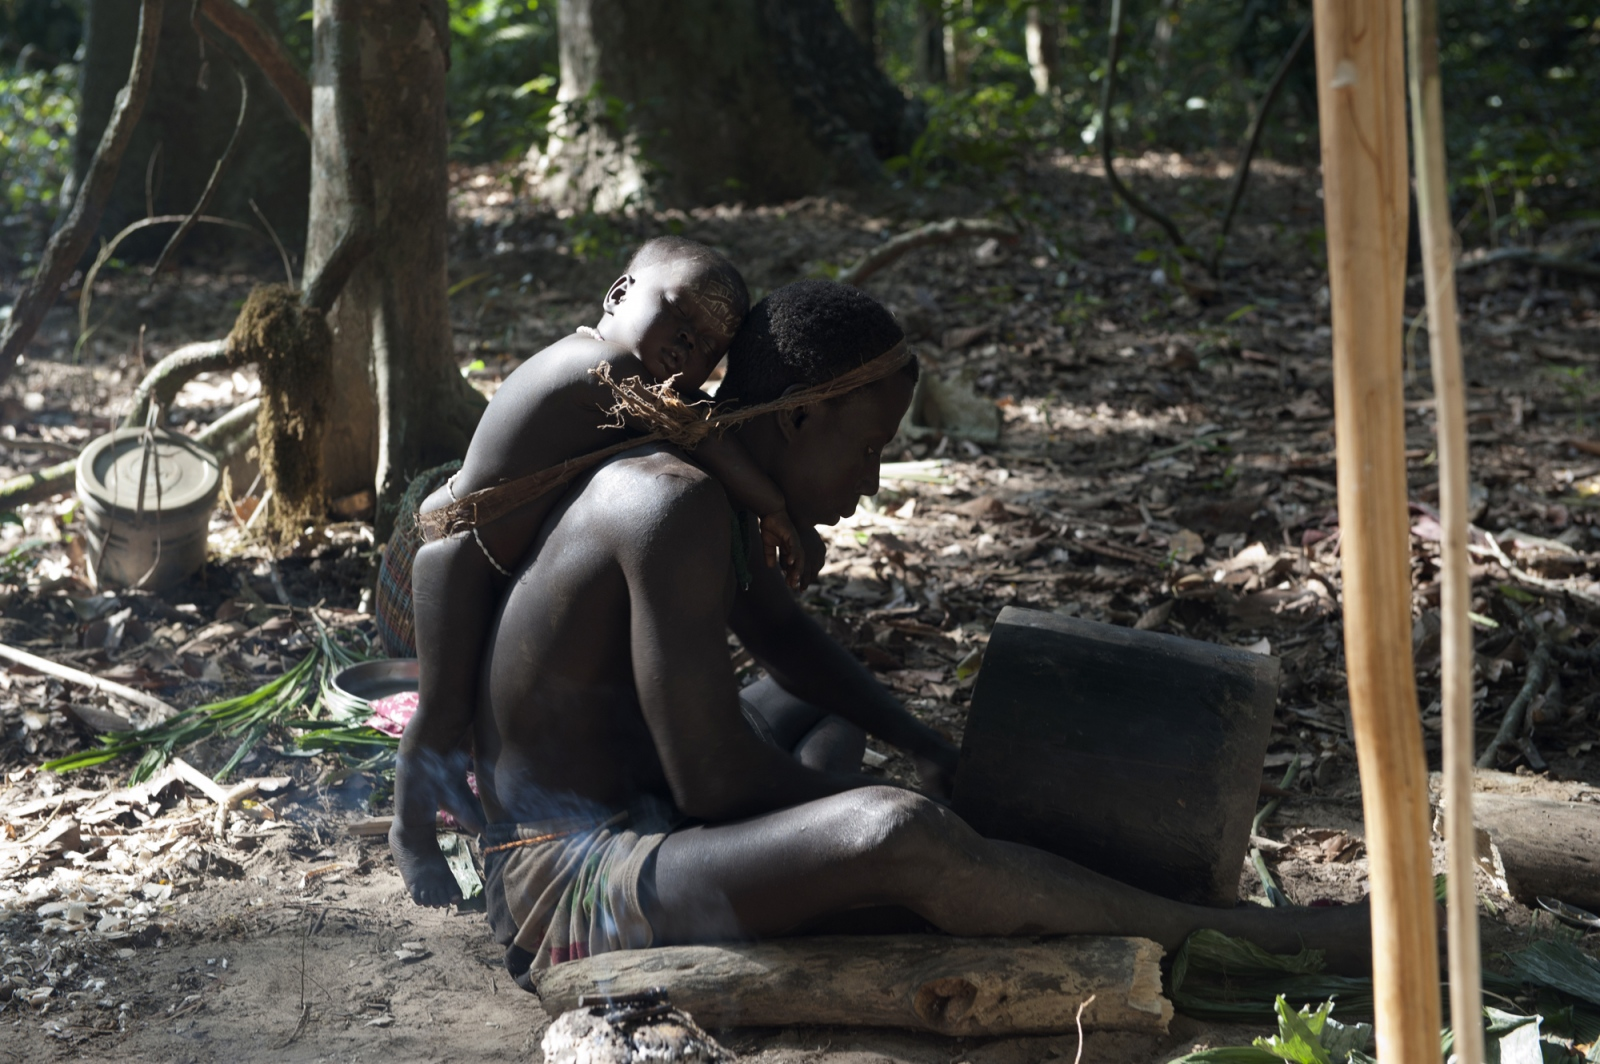 Art and Documentary Photography - Loading jarawa_beilvert_carving_a_pot.jpg